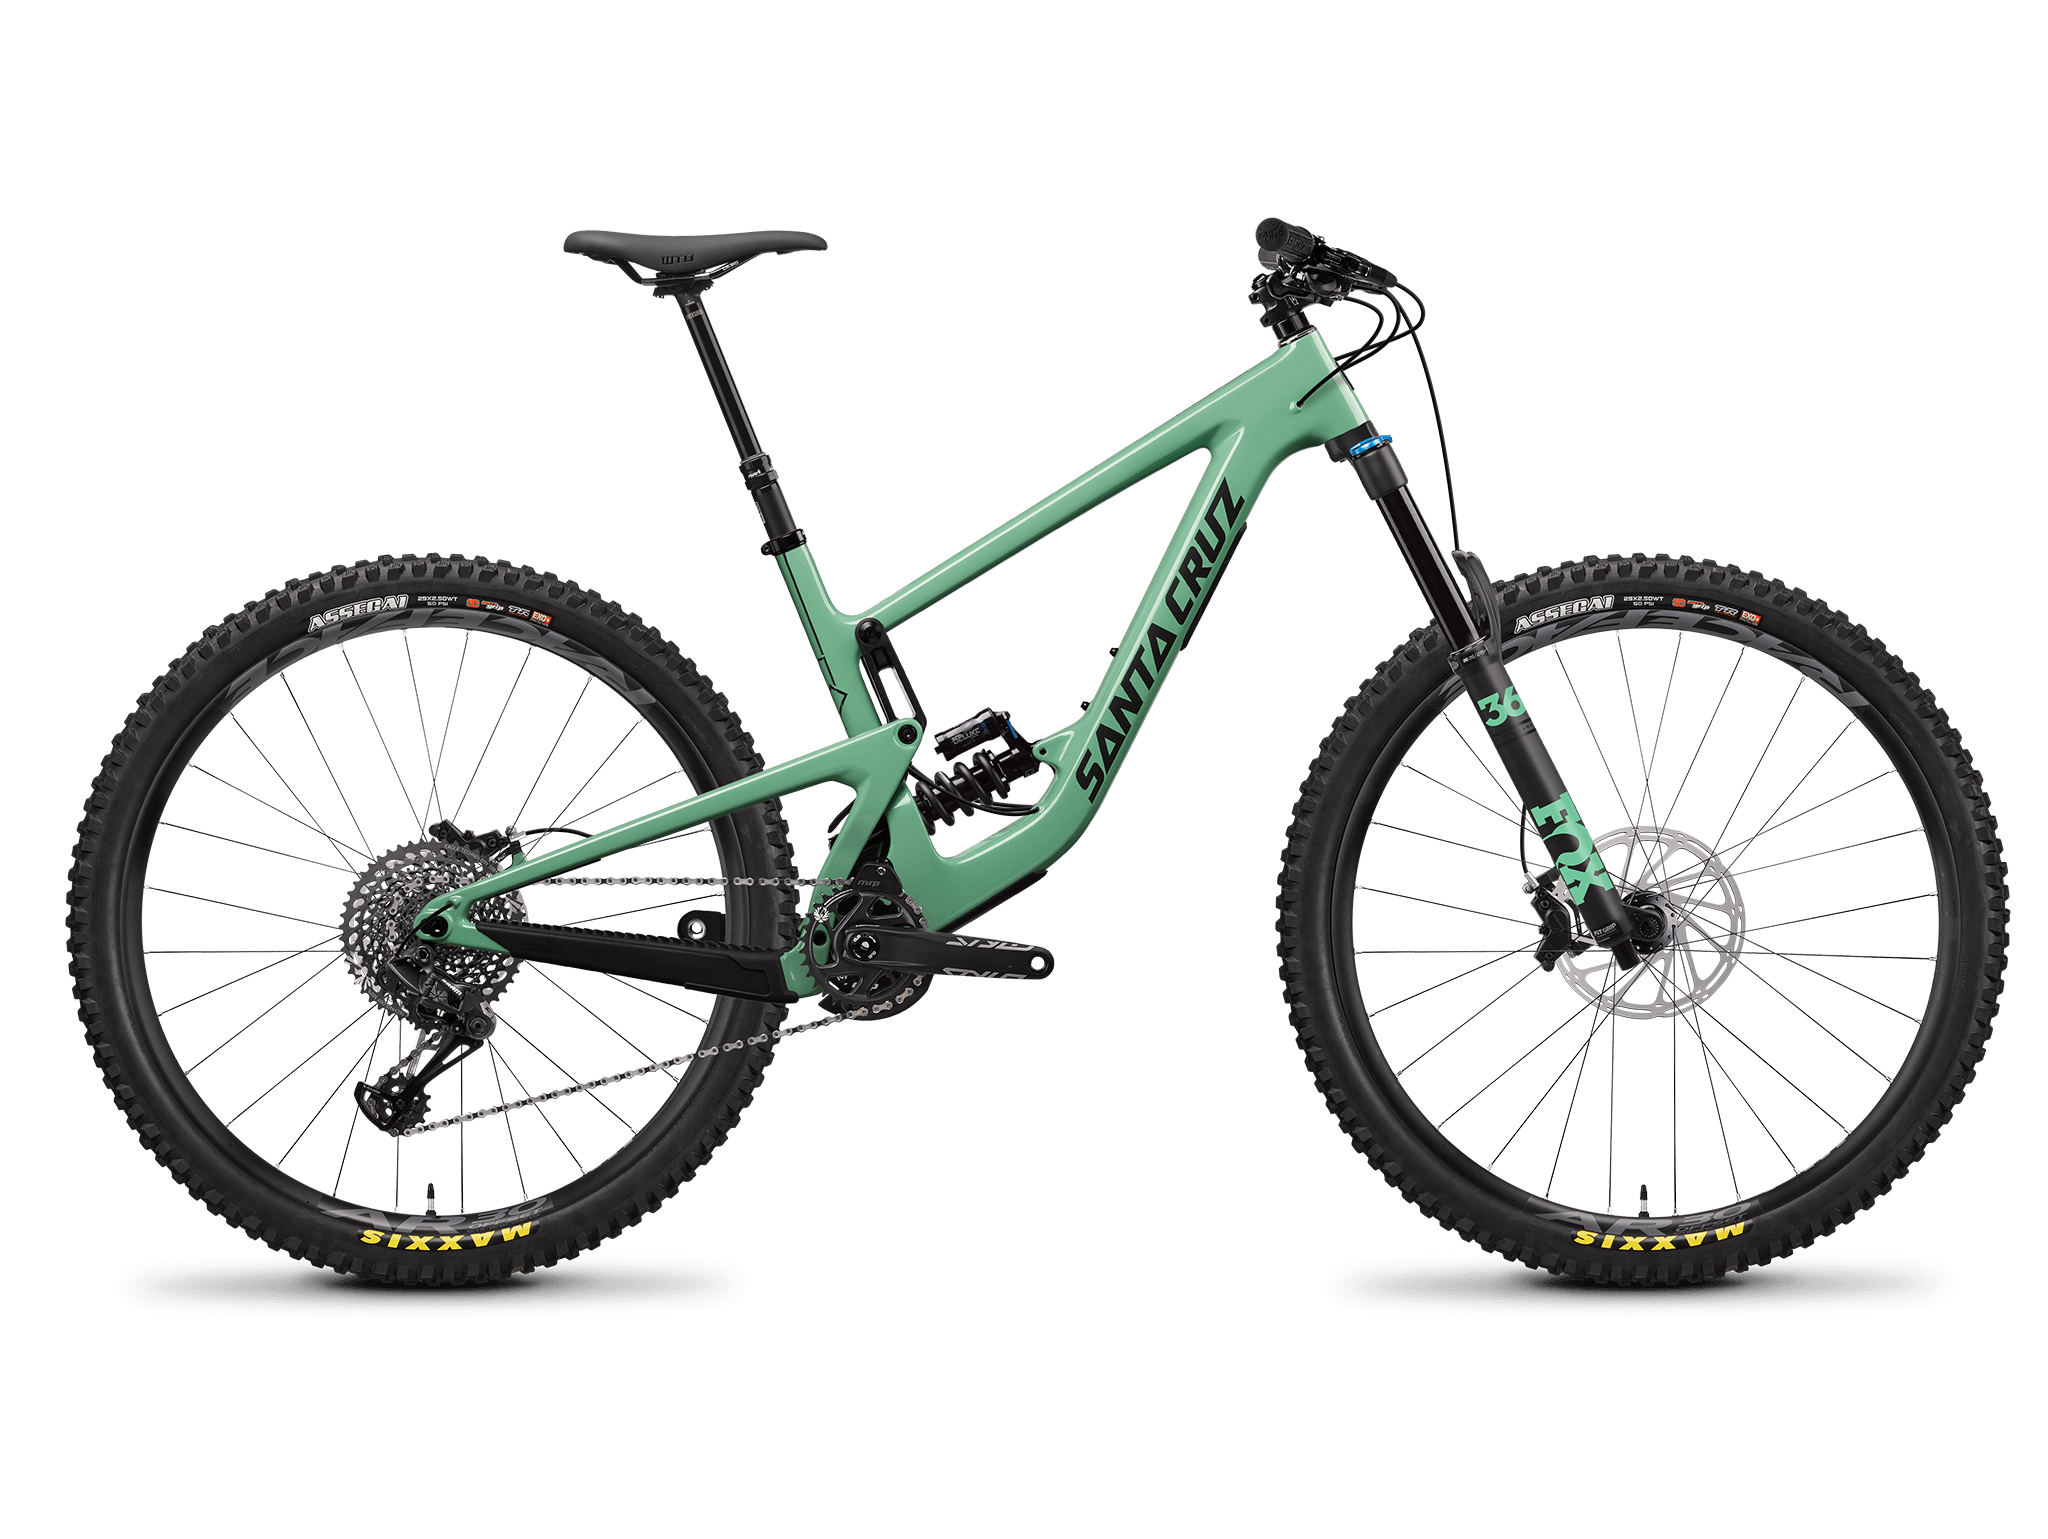 2019 Santa Cruz Megatower C S w/Coil Select+ 29 inch Mountain Bike | MTB